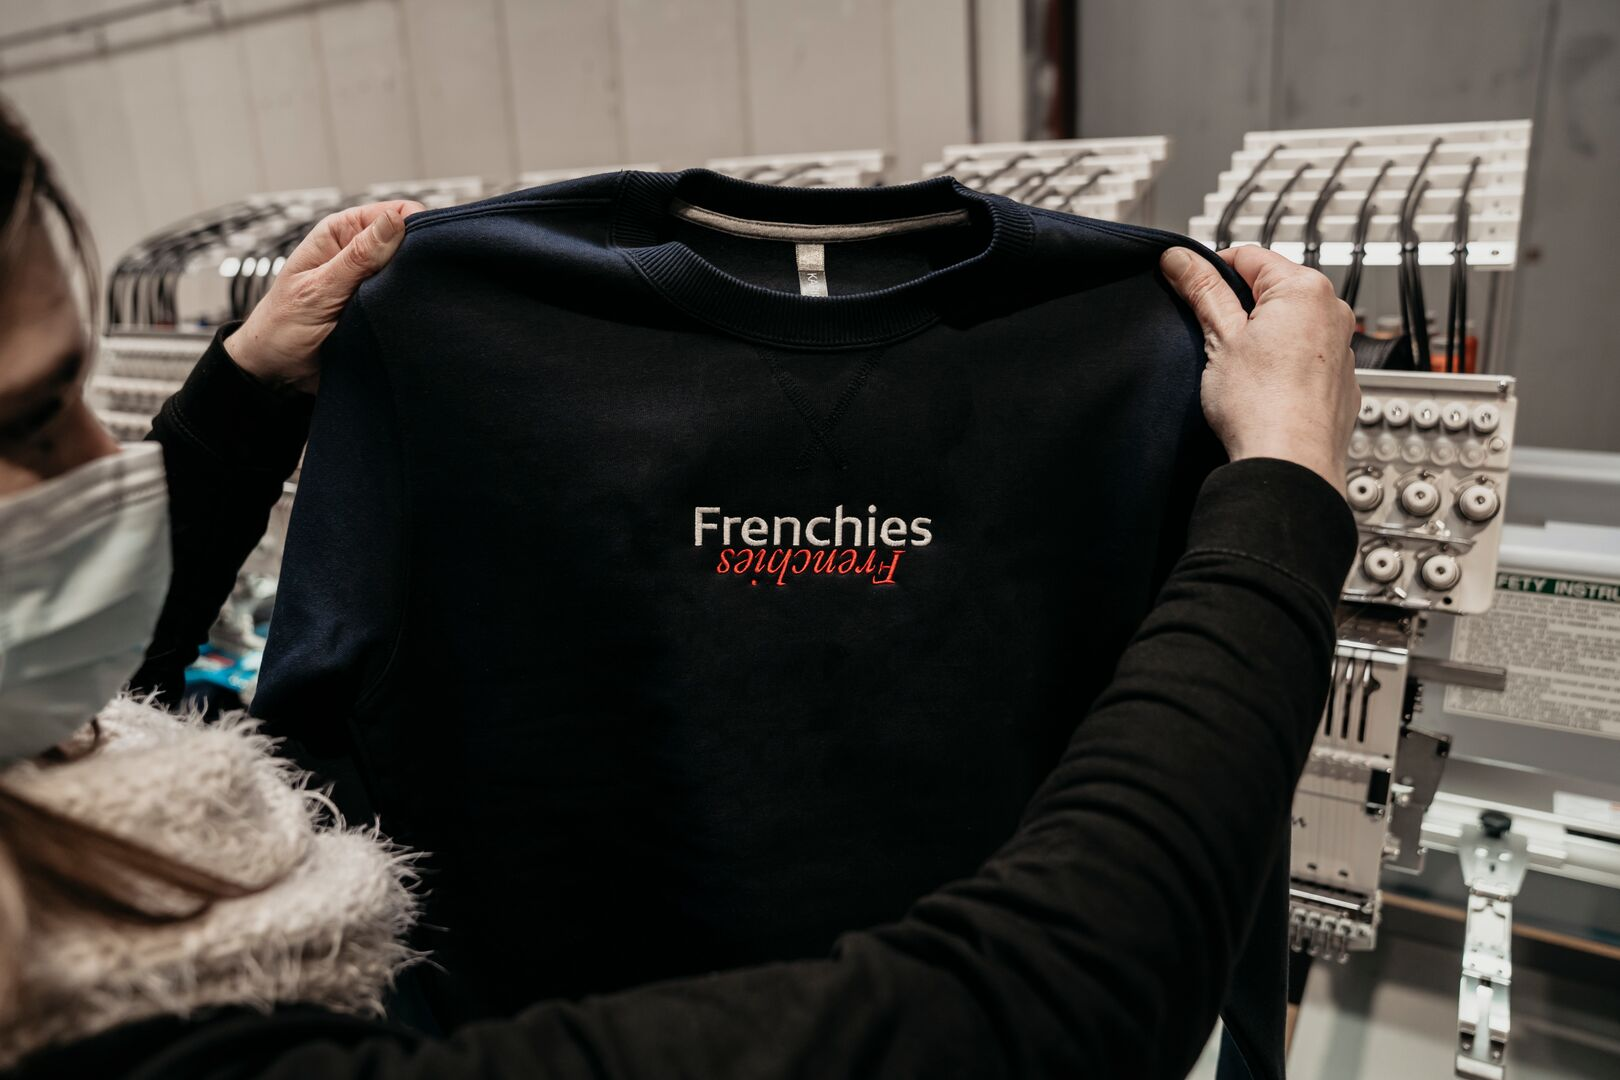 https://assets.main-gauche.com/m/72da870970710a71/web_image-frenchies-sweat-brode.jpg